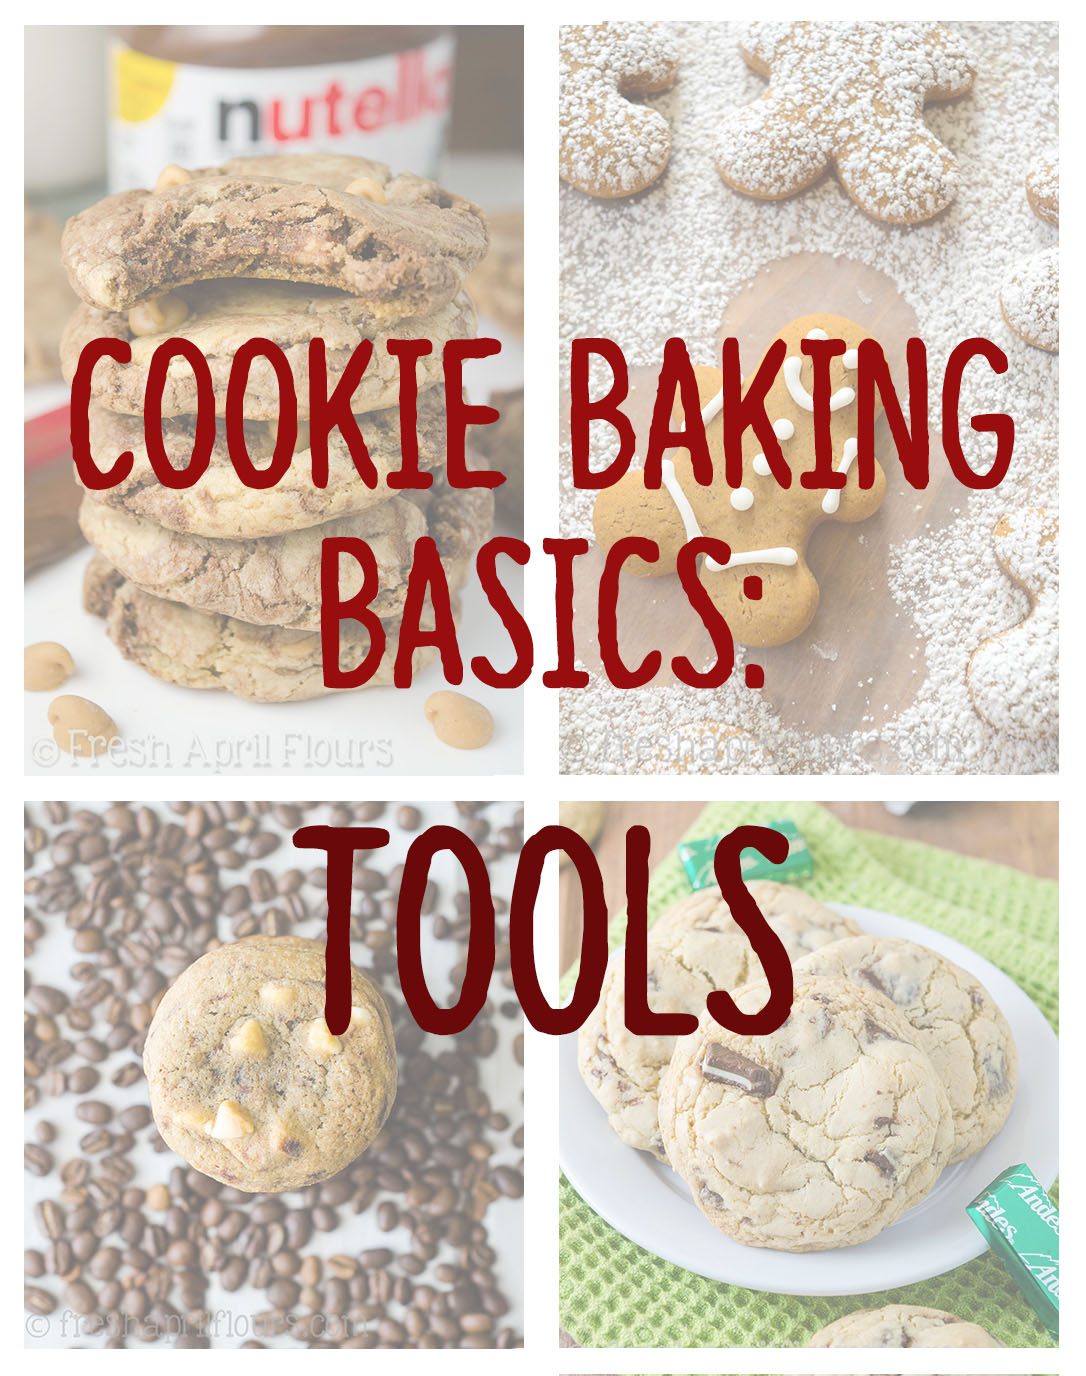 Cookie Baking Basics: Tools from Fresh April Flours